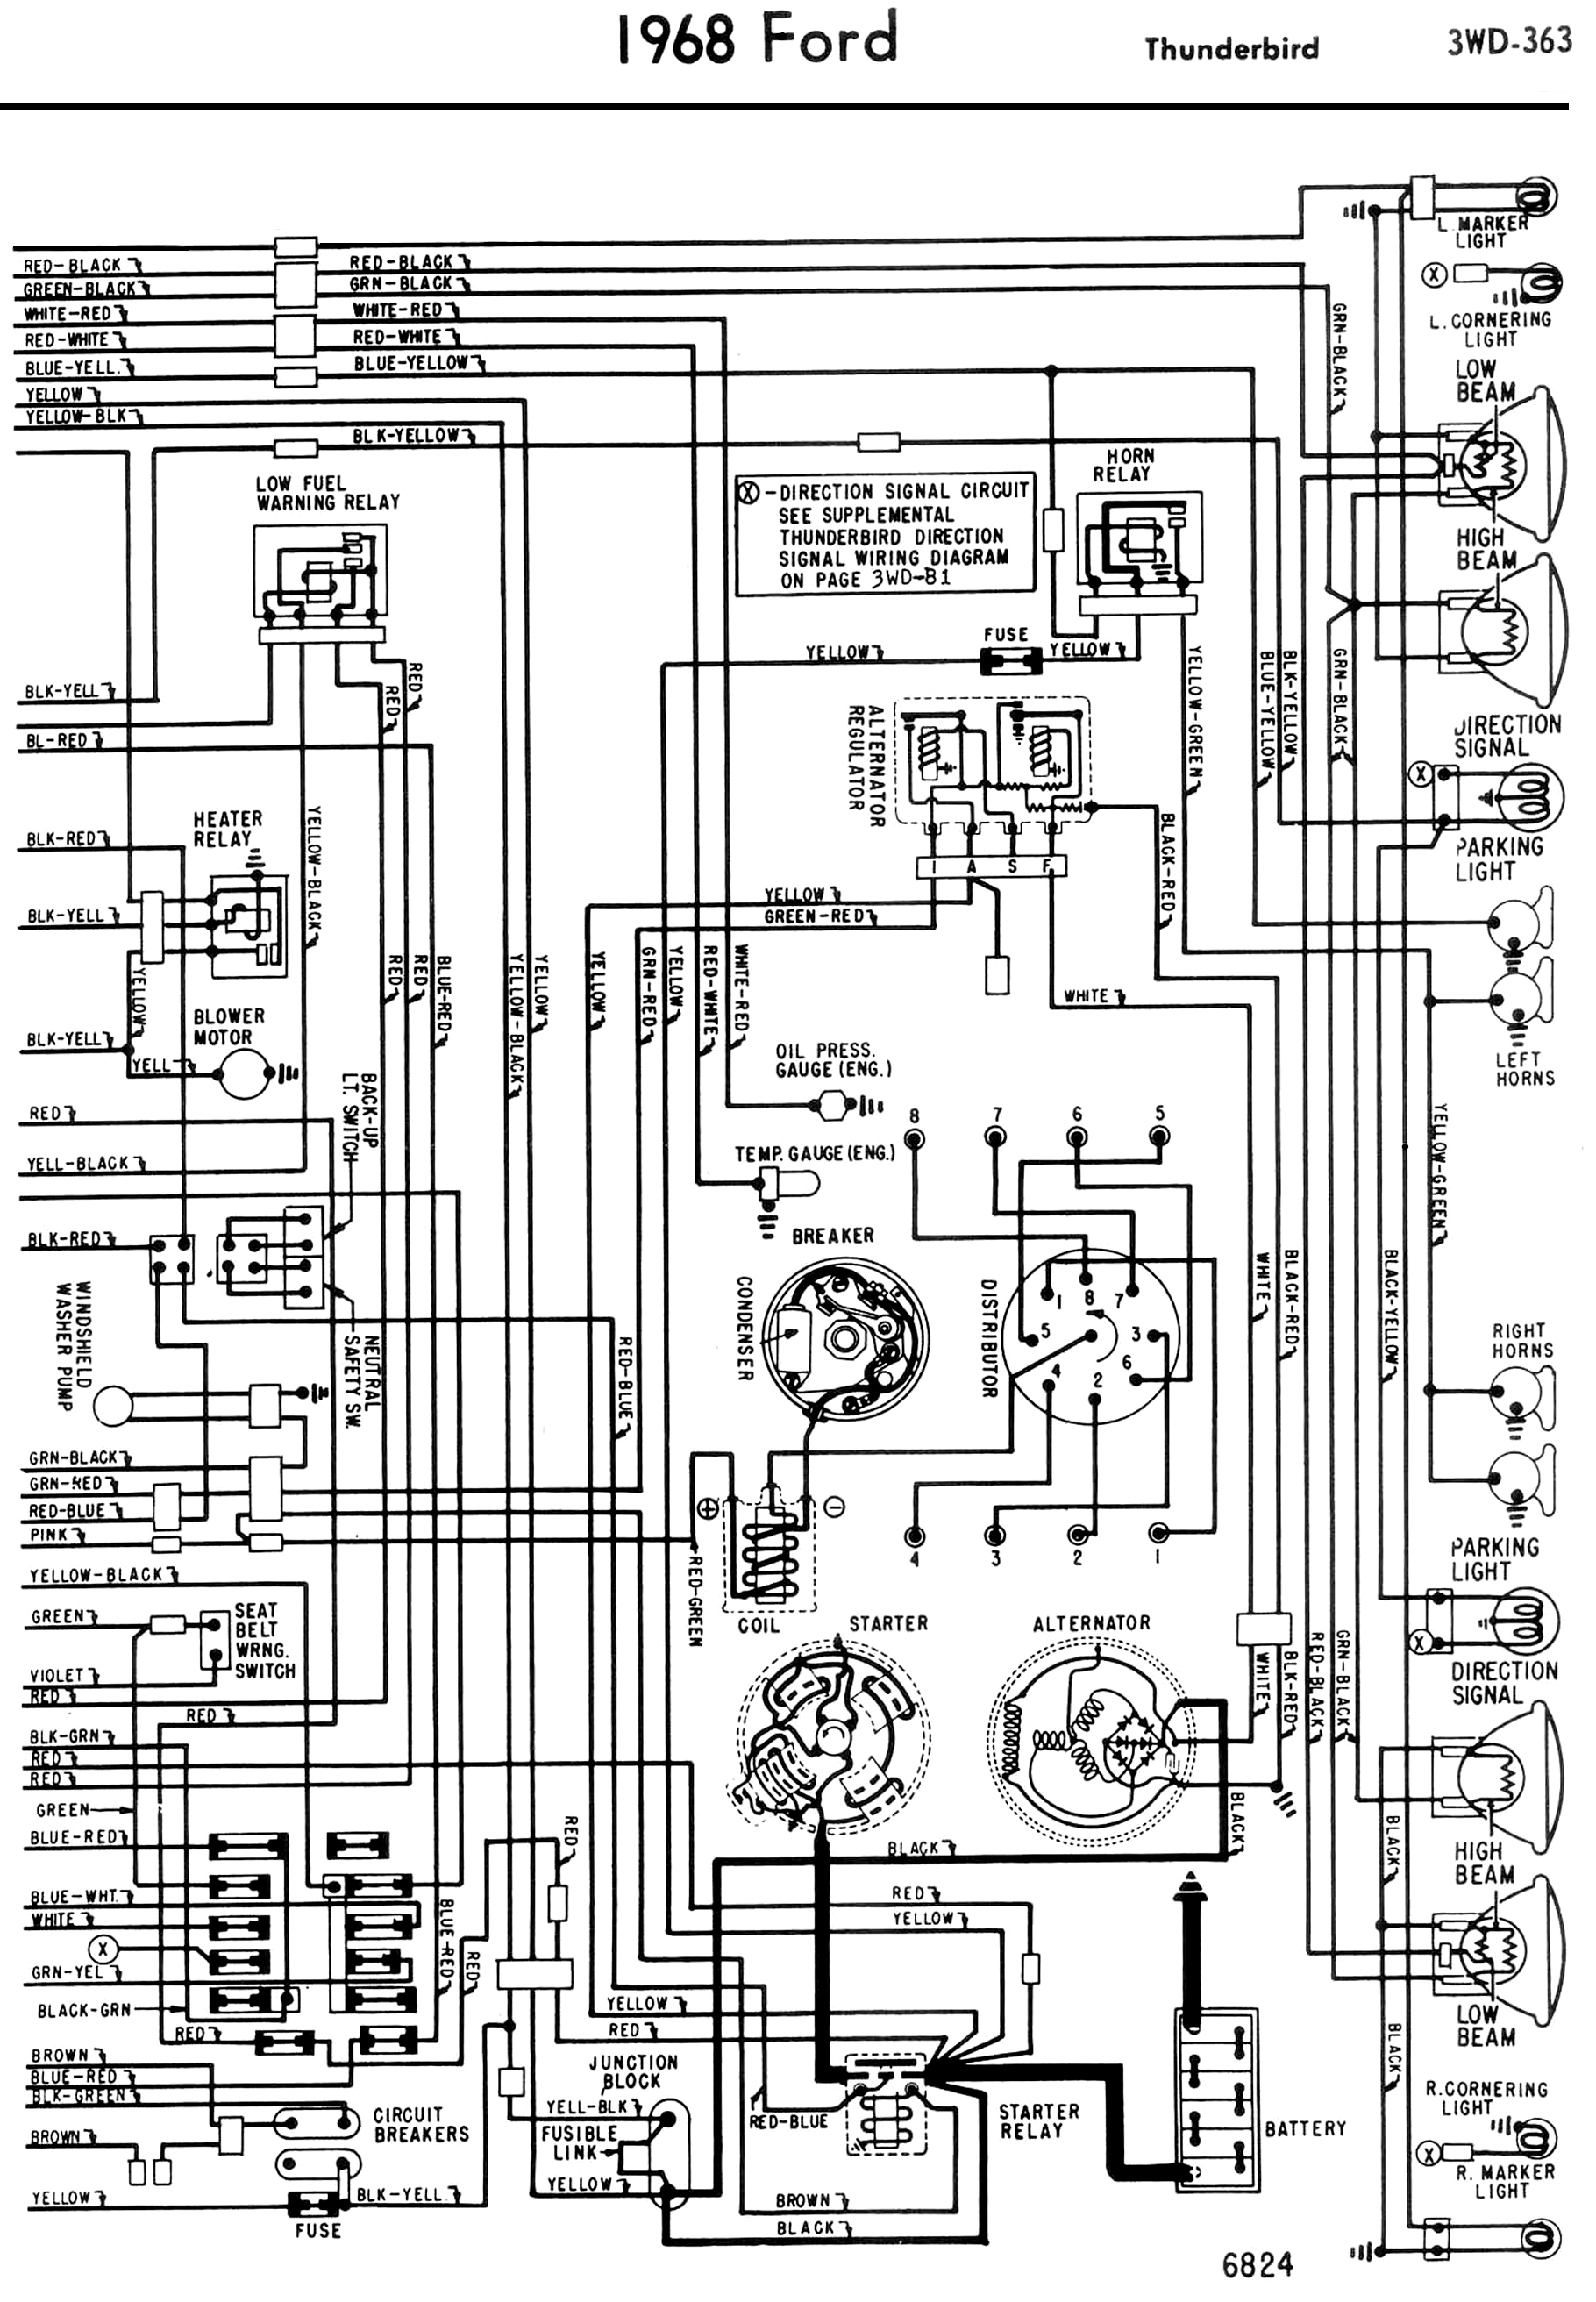 390 Ford Engine Diagram Wiring Library Chevelle 1965 Thunderbird Data Diagrams U2022